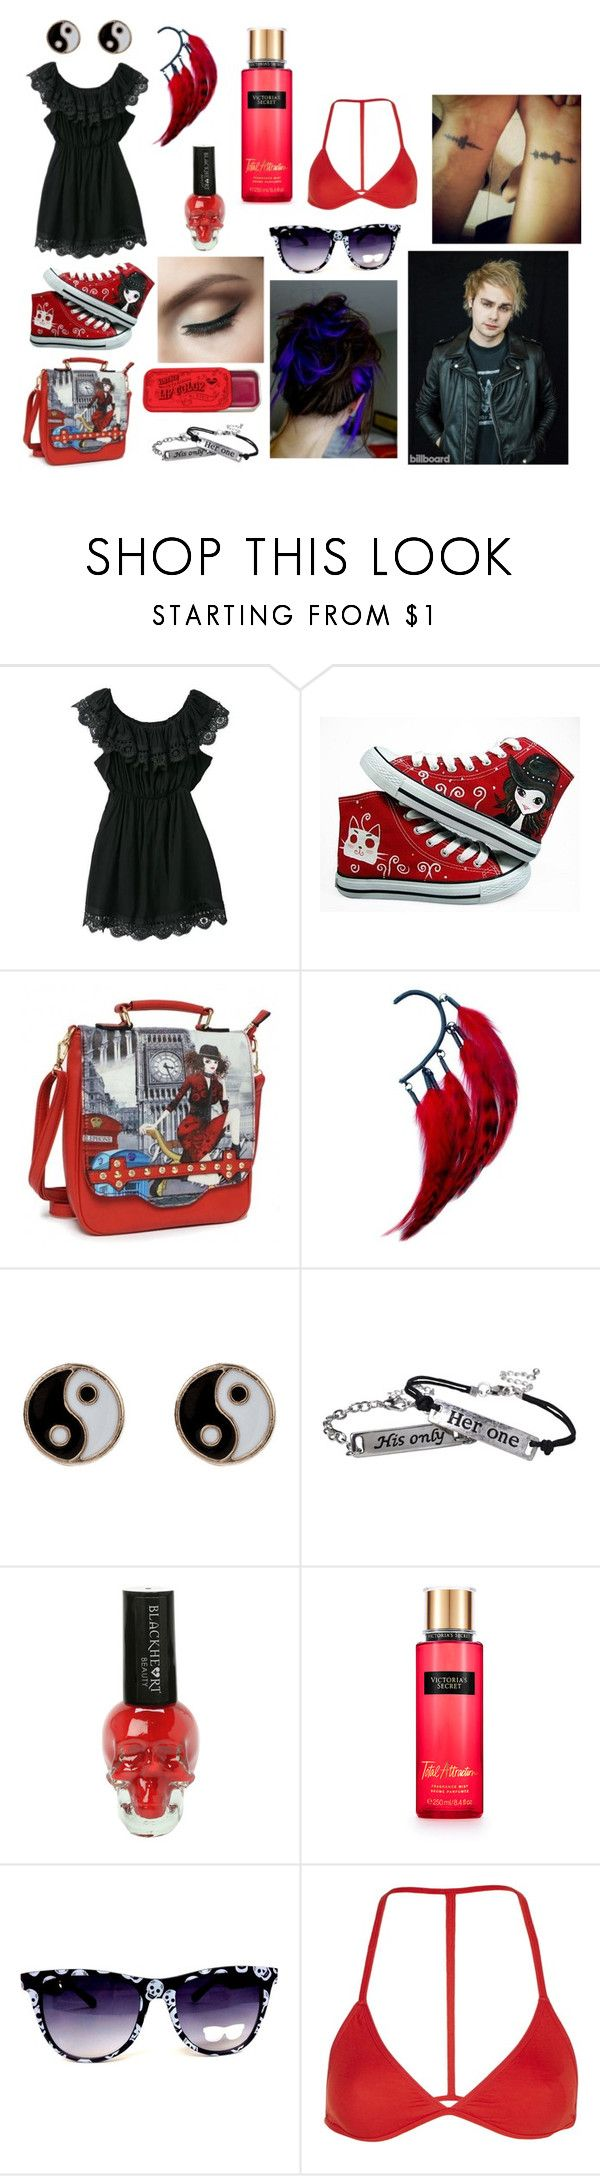 """""""Michael Clifford's girlfriend (Not Really)"""" by allyfazio ❤ liked on Polyvore featuring HVBAO, Anni Jürgenson, Accessorize, Victoria's Secret and Topshop"""